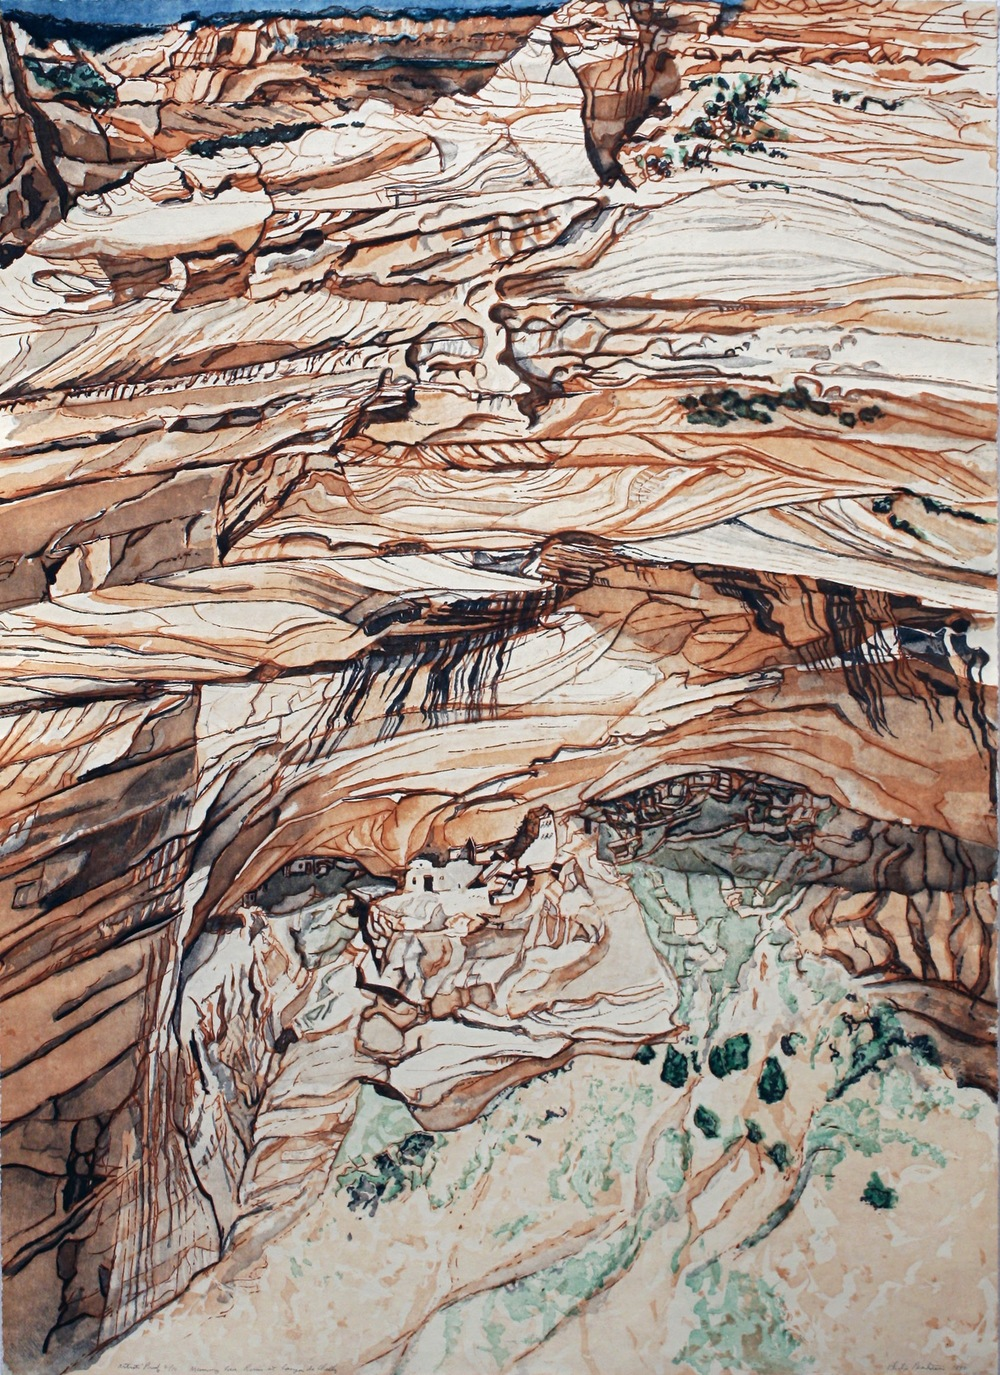 Mummy Cave Ruins at Canyon de Chelly , 1981 Etching and Aquatint on Paper 40 1/2 x 28 7/10 inches